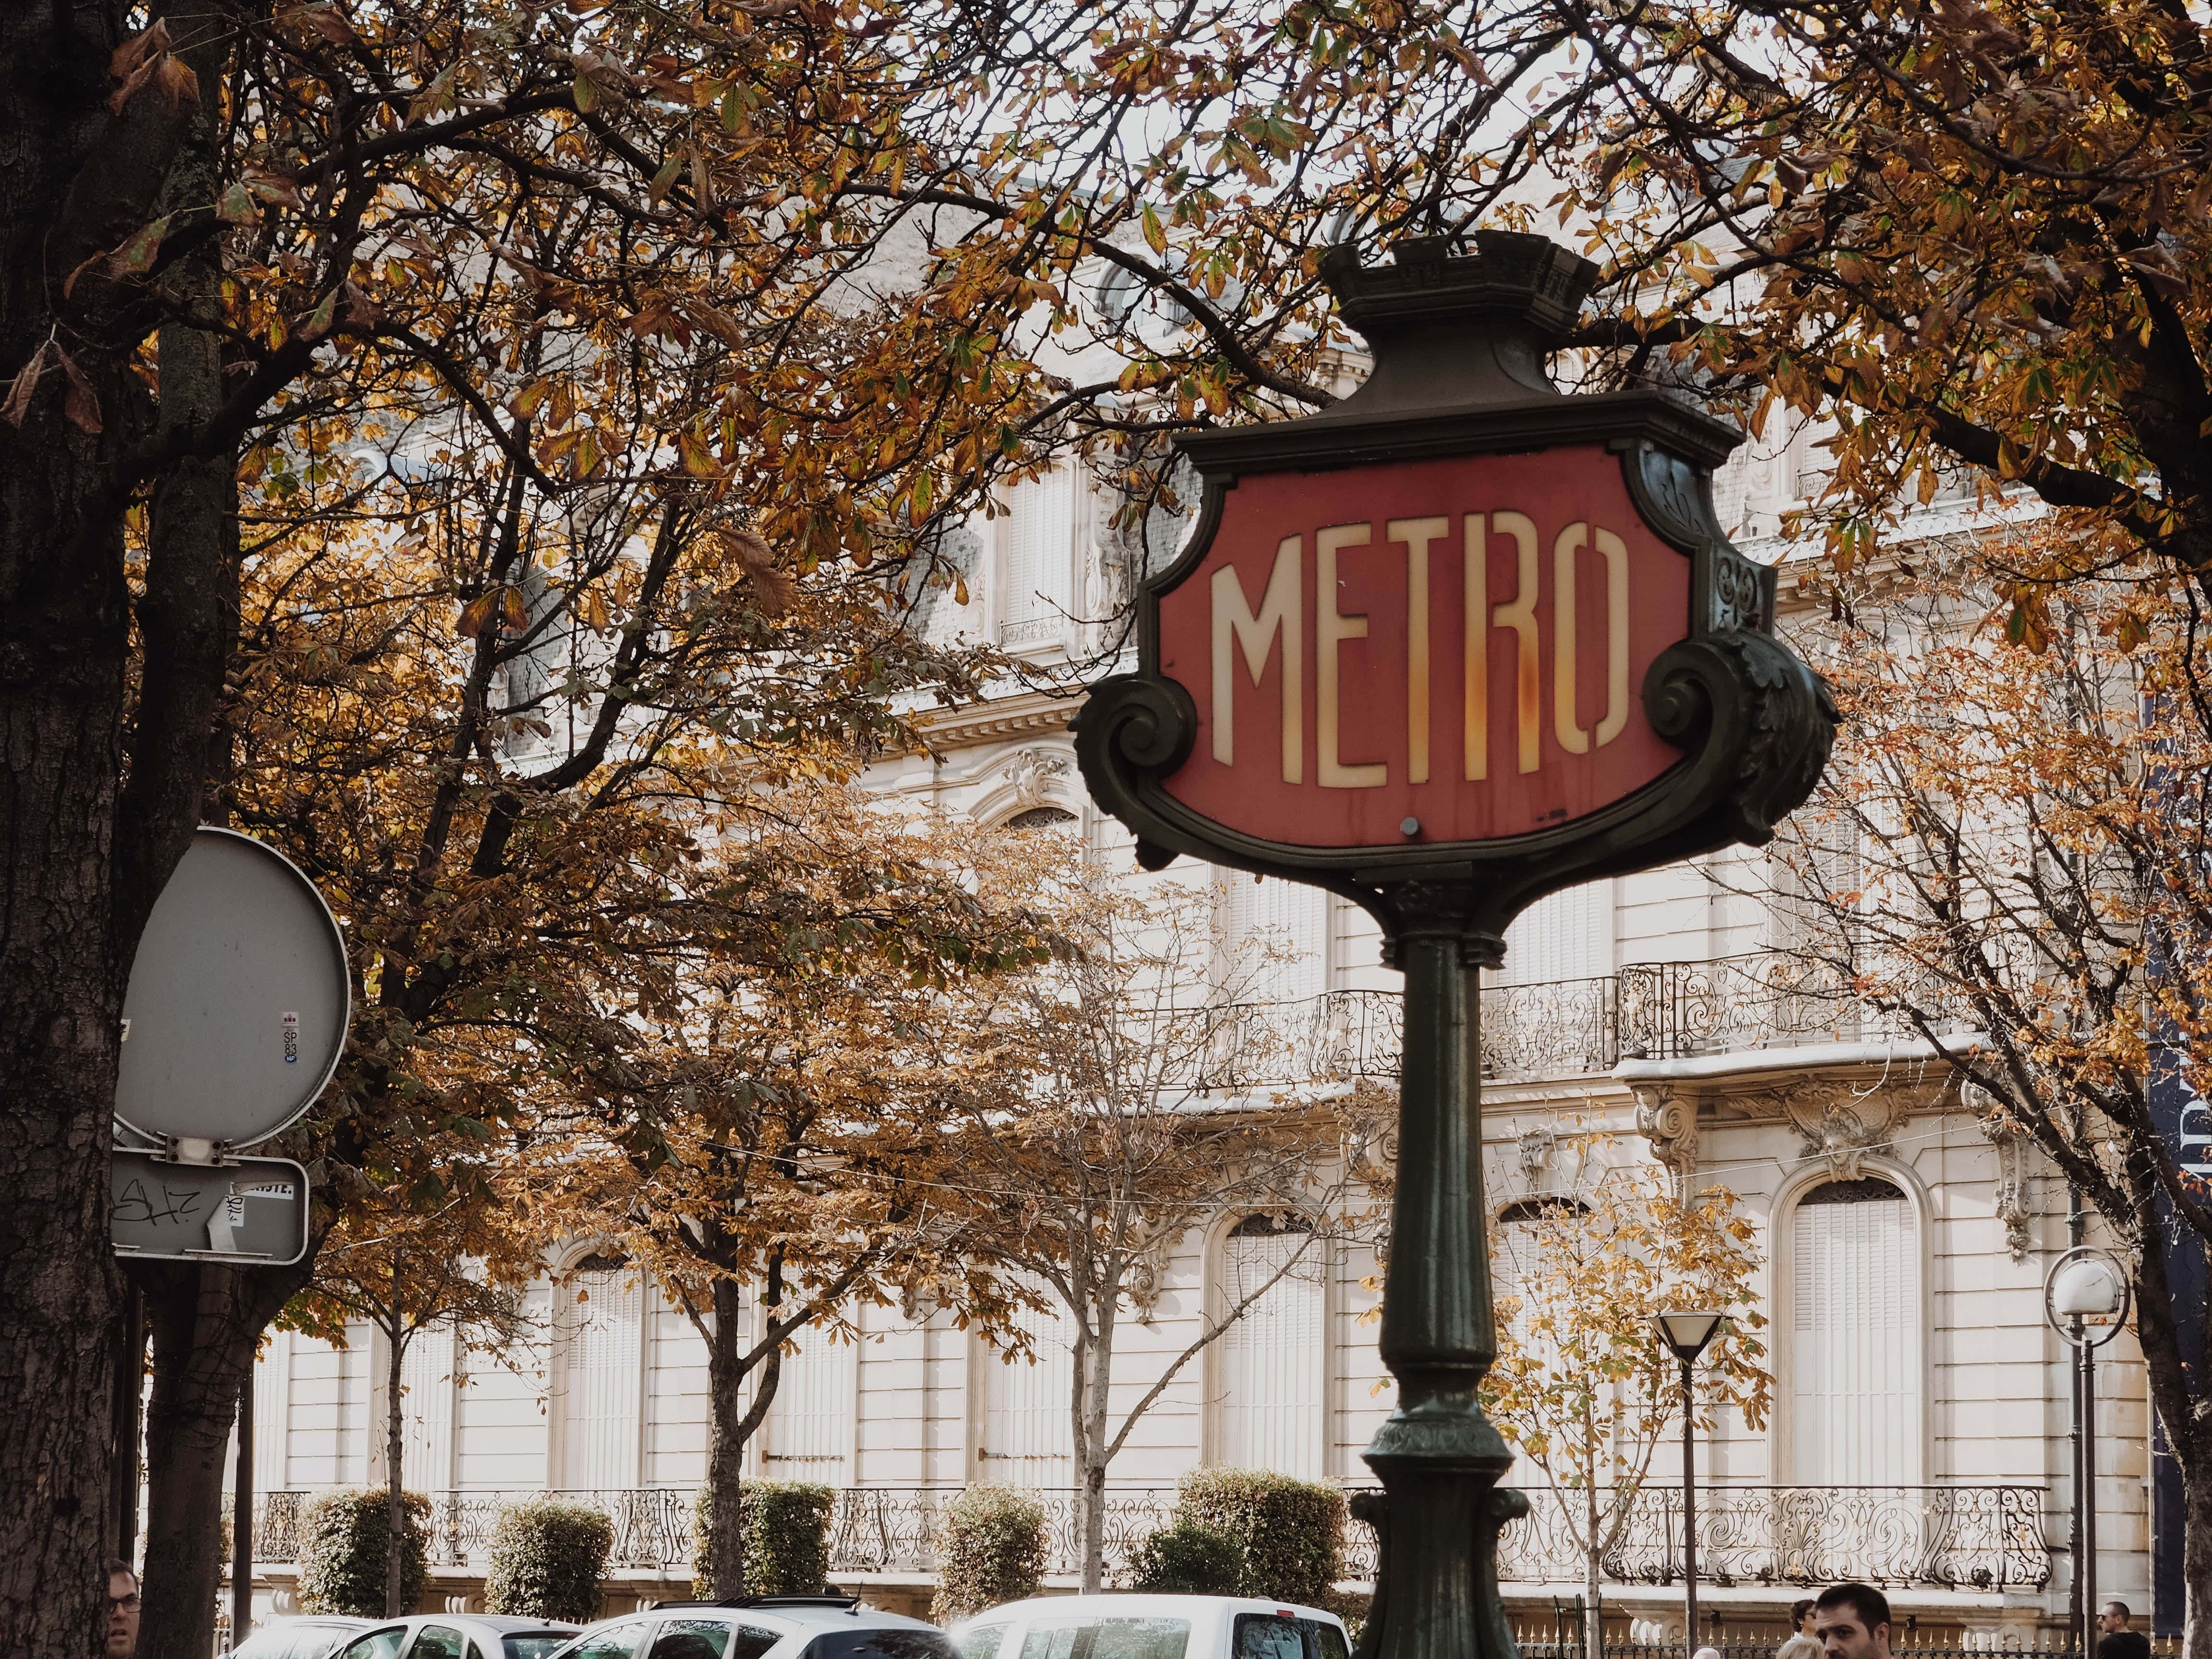 A frequently asked question about France is how to get around. You'll have plenty of options